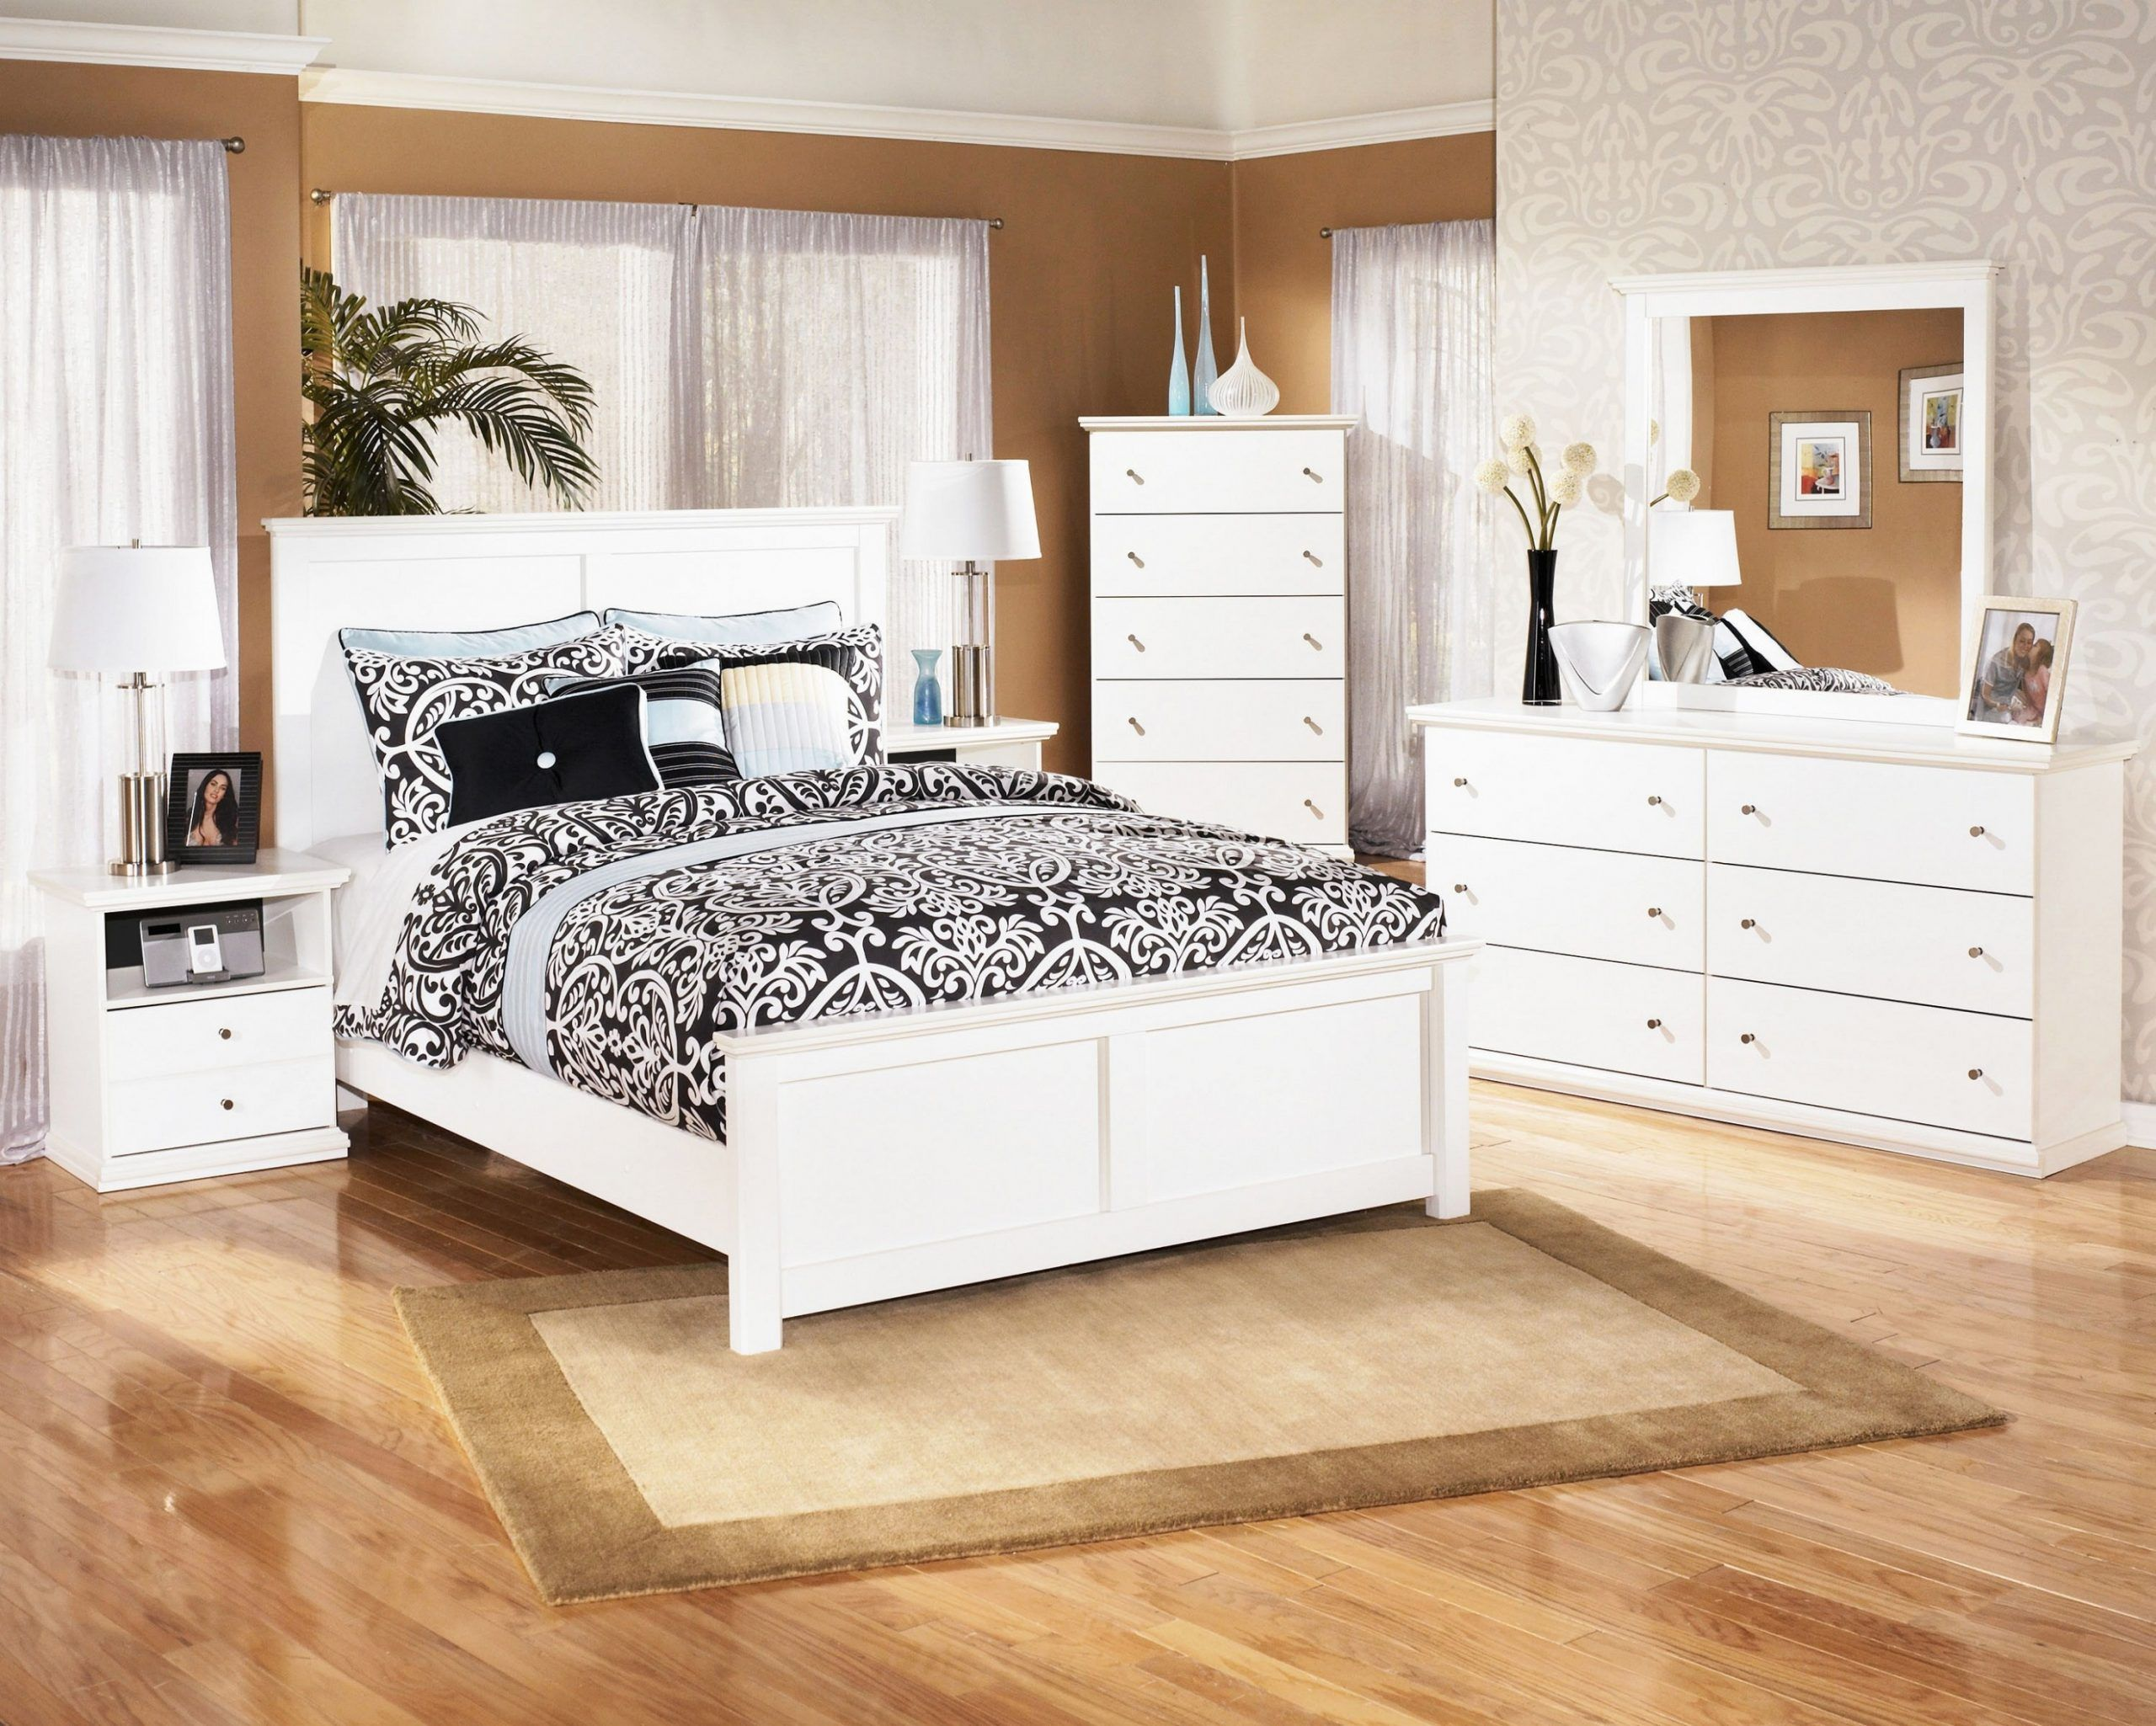 Why Is White Wooden Bedroom Furniture Considered Underrated? in